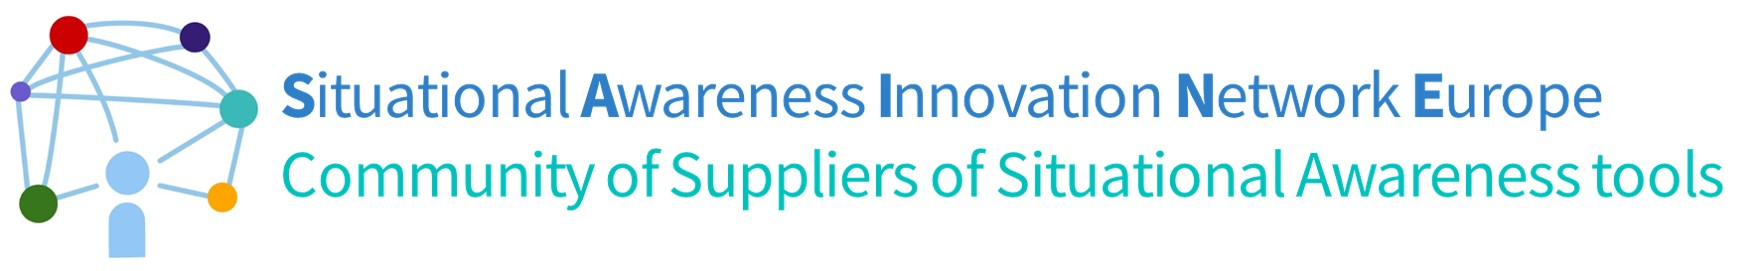 SA-IN-EU - Community of Suppliers of Situational Awareness Systems